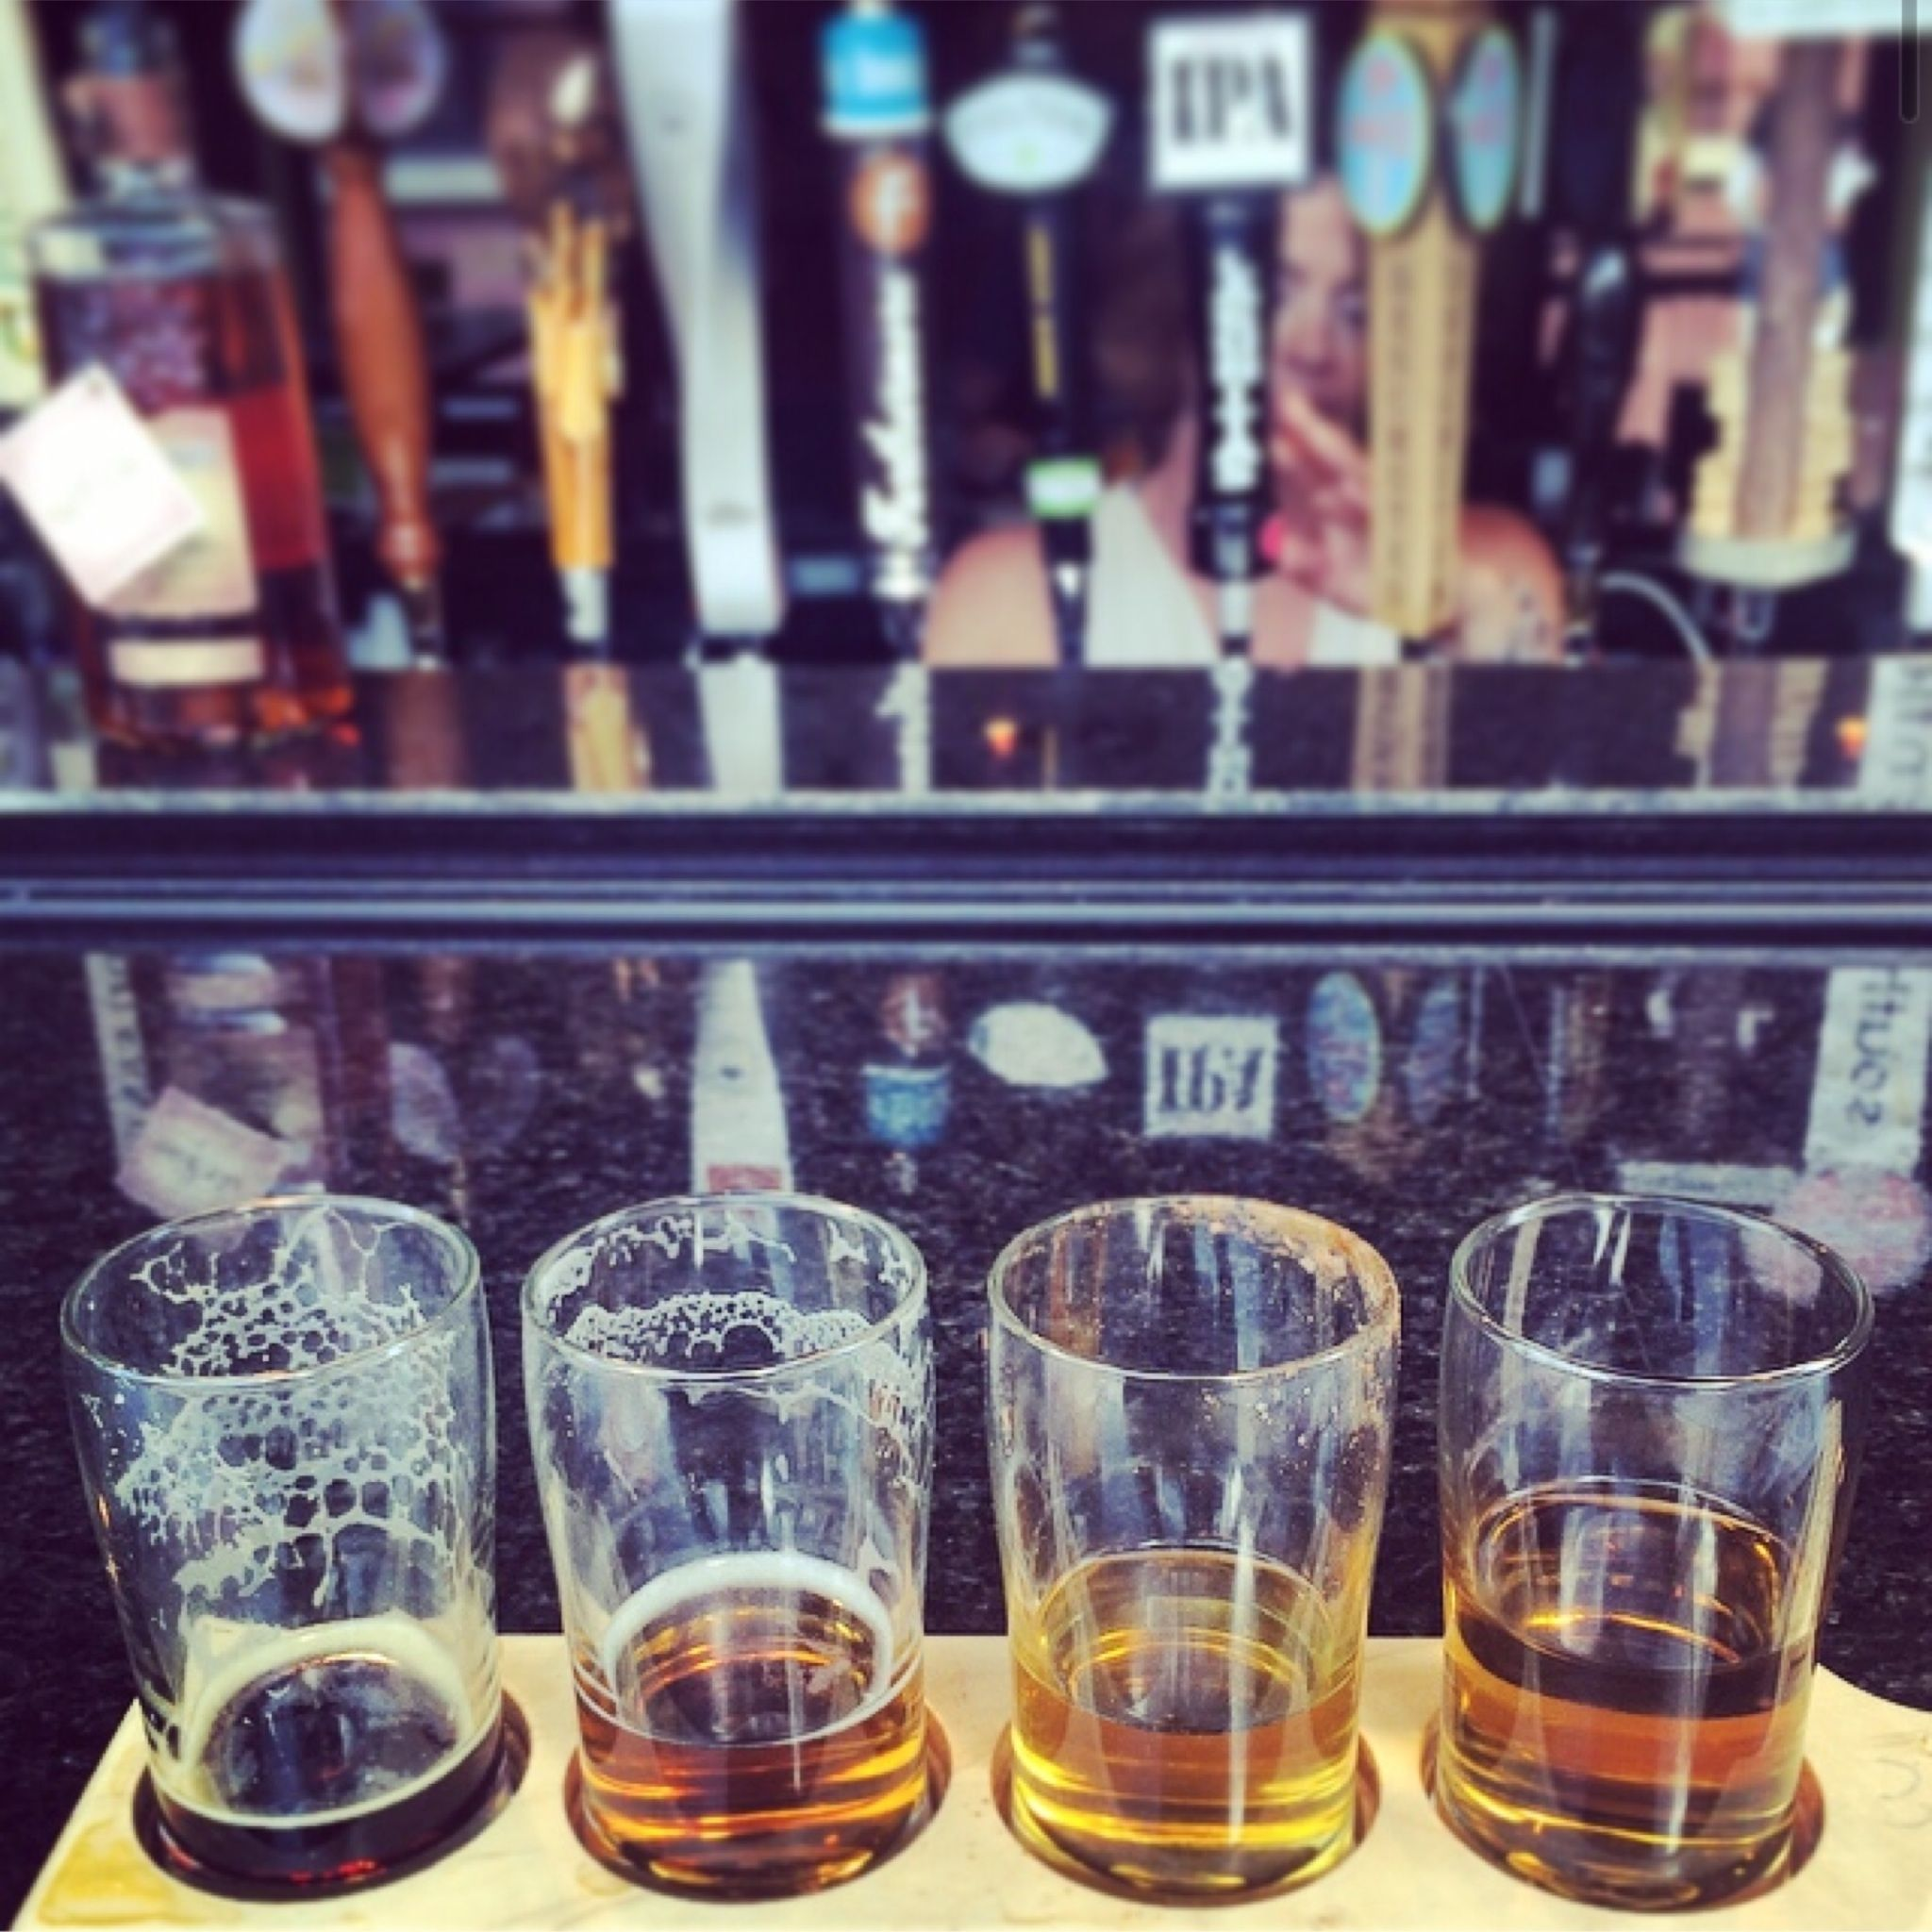 Craft beer destination at the Tap House on Historic 3rd St